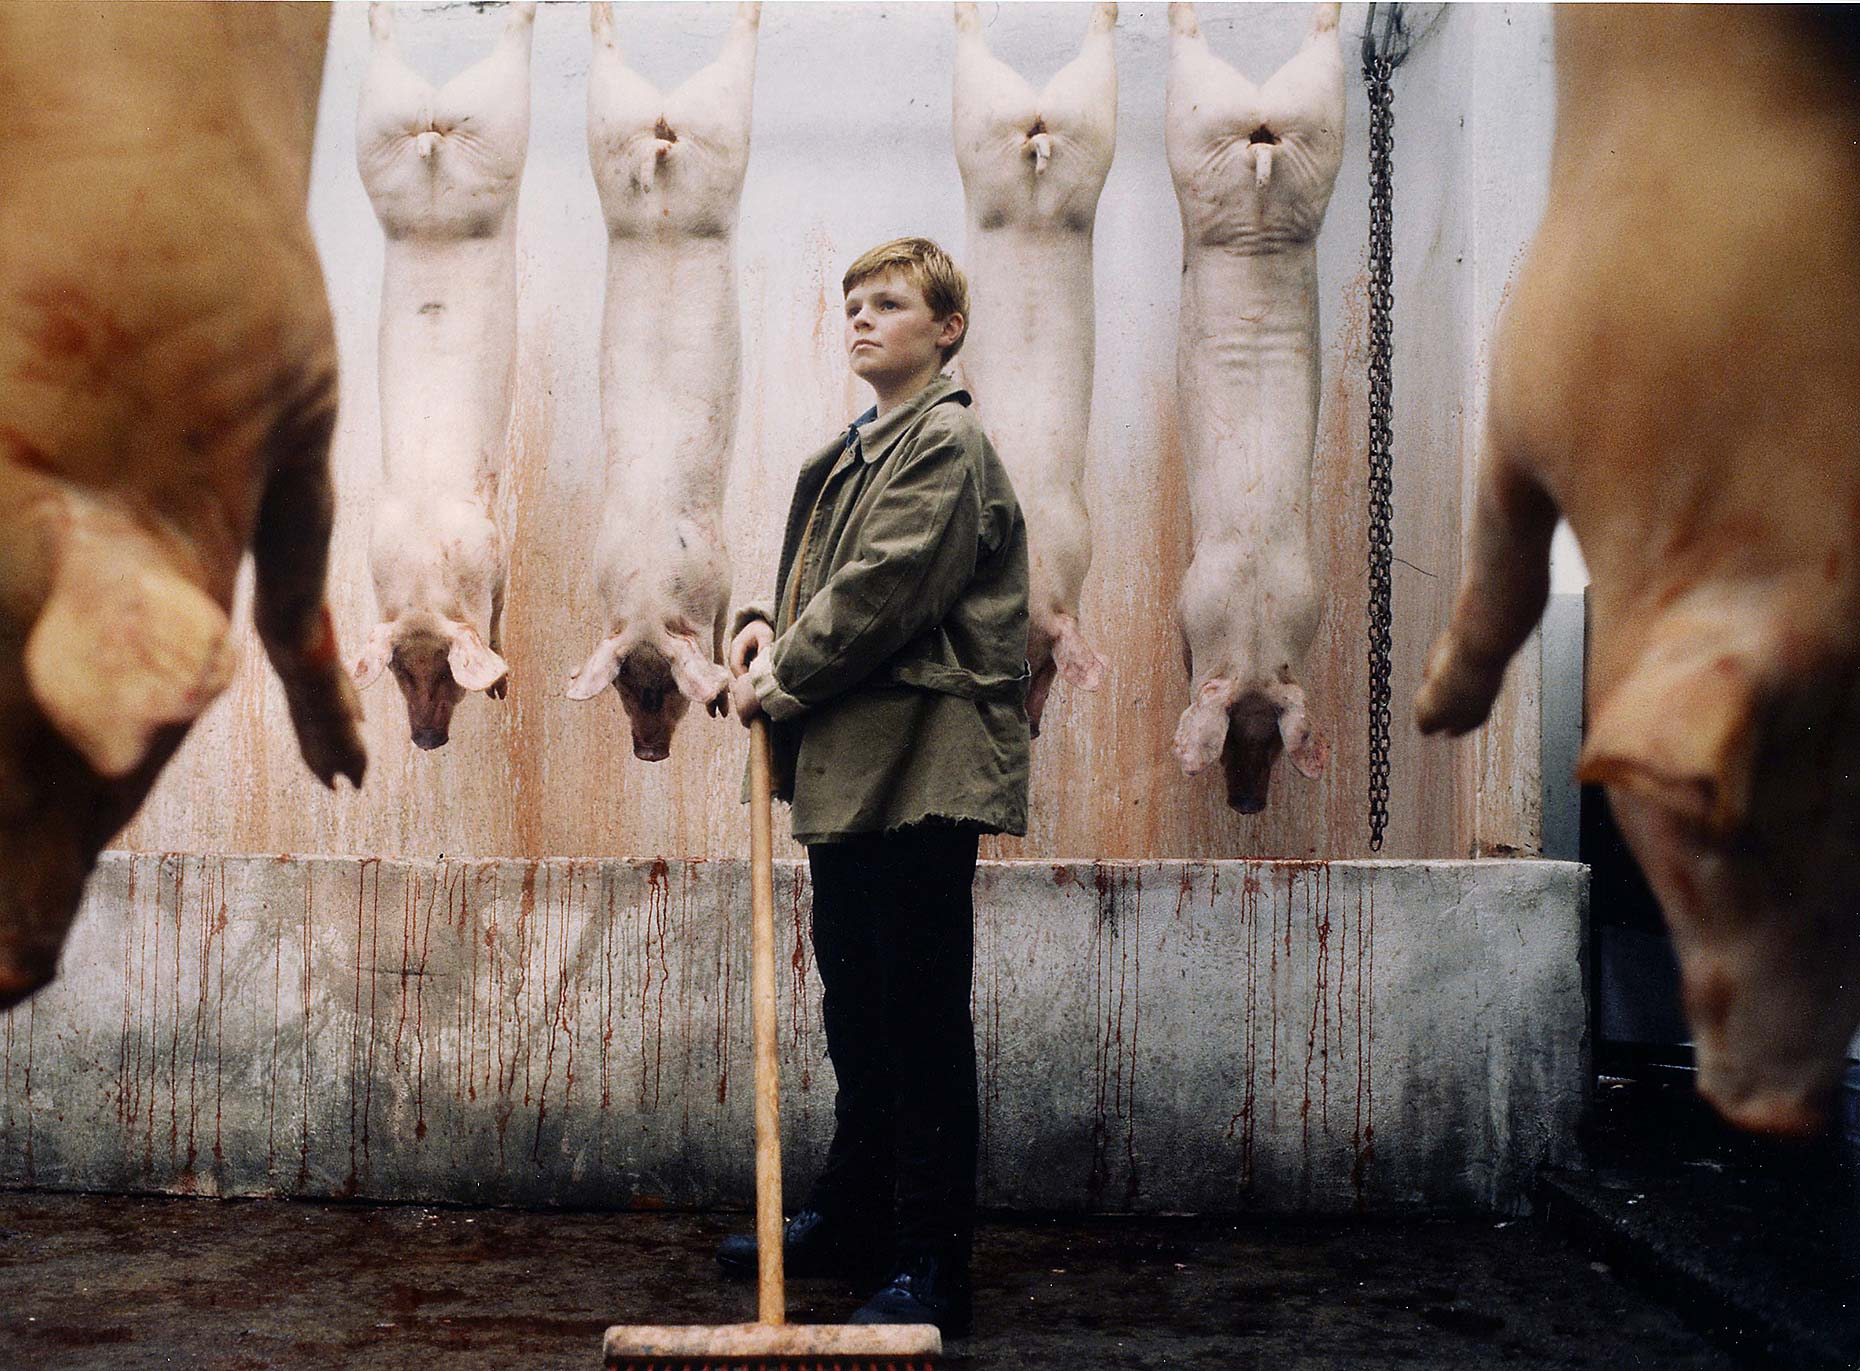 THE BUTCHER BOY : Eamonn Owens (1)